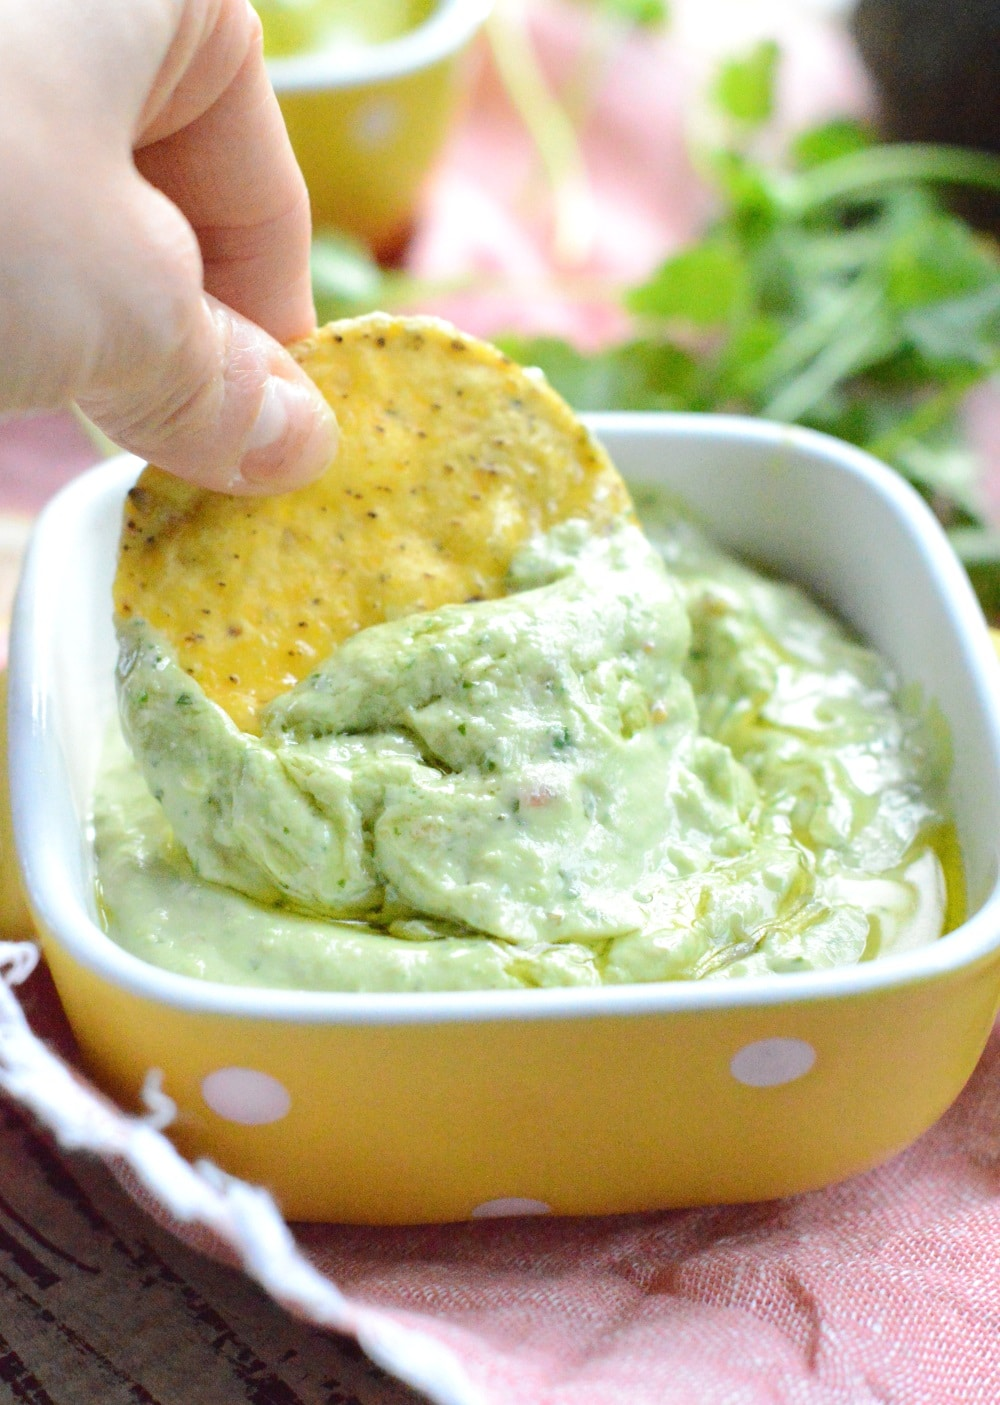 Simple avocado dip for chips only 6 ingredients with cilantro, tahini and olive oils. A creamy simple guacamole recipe perfect to dip tortilla chips.